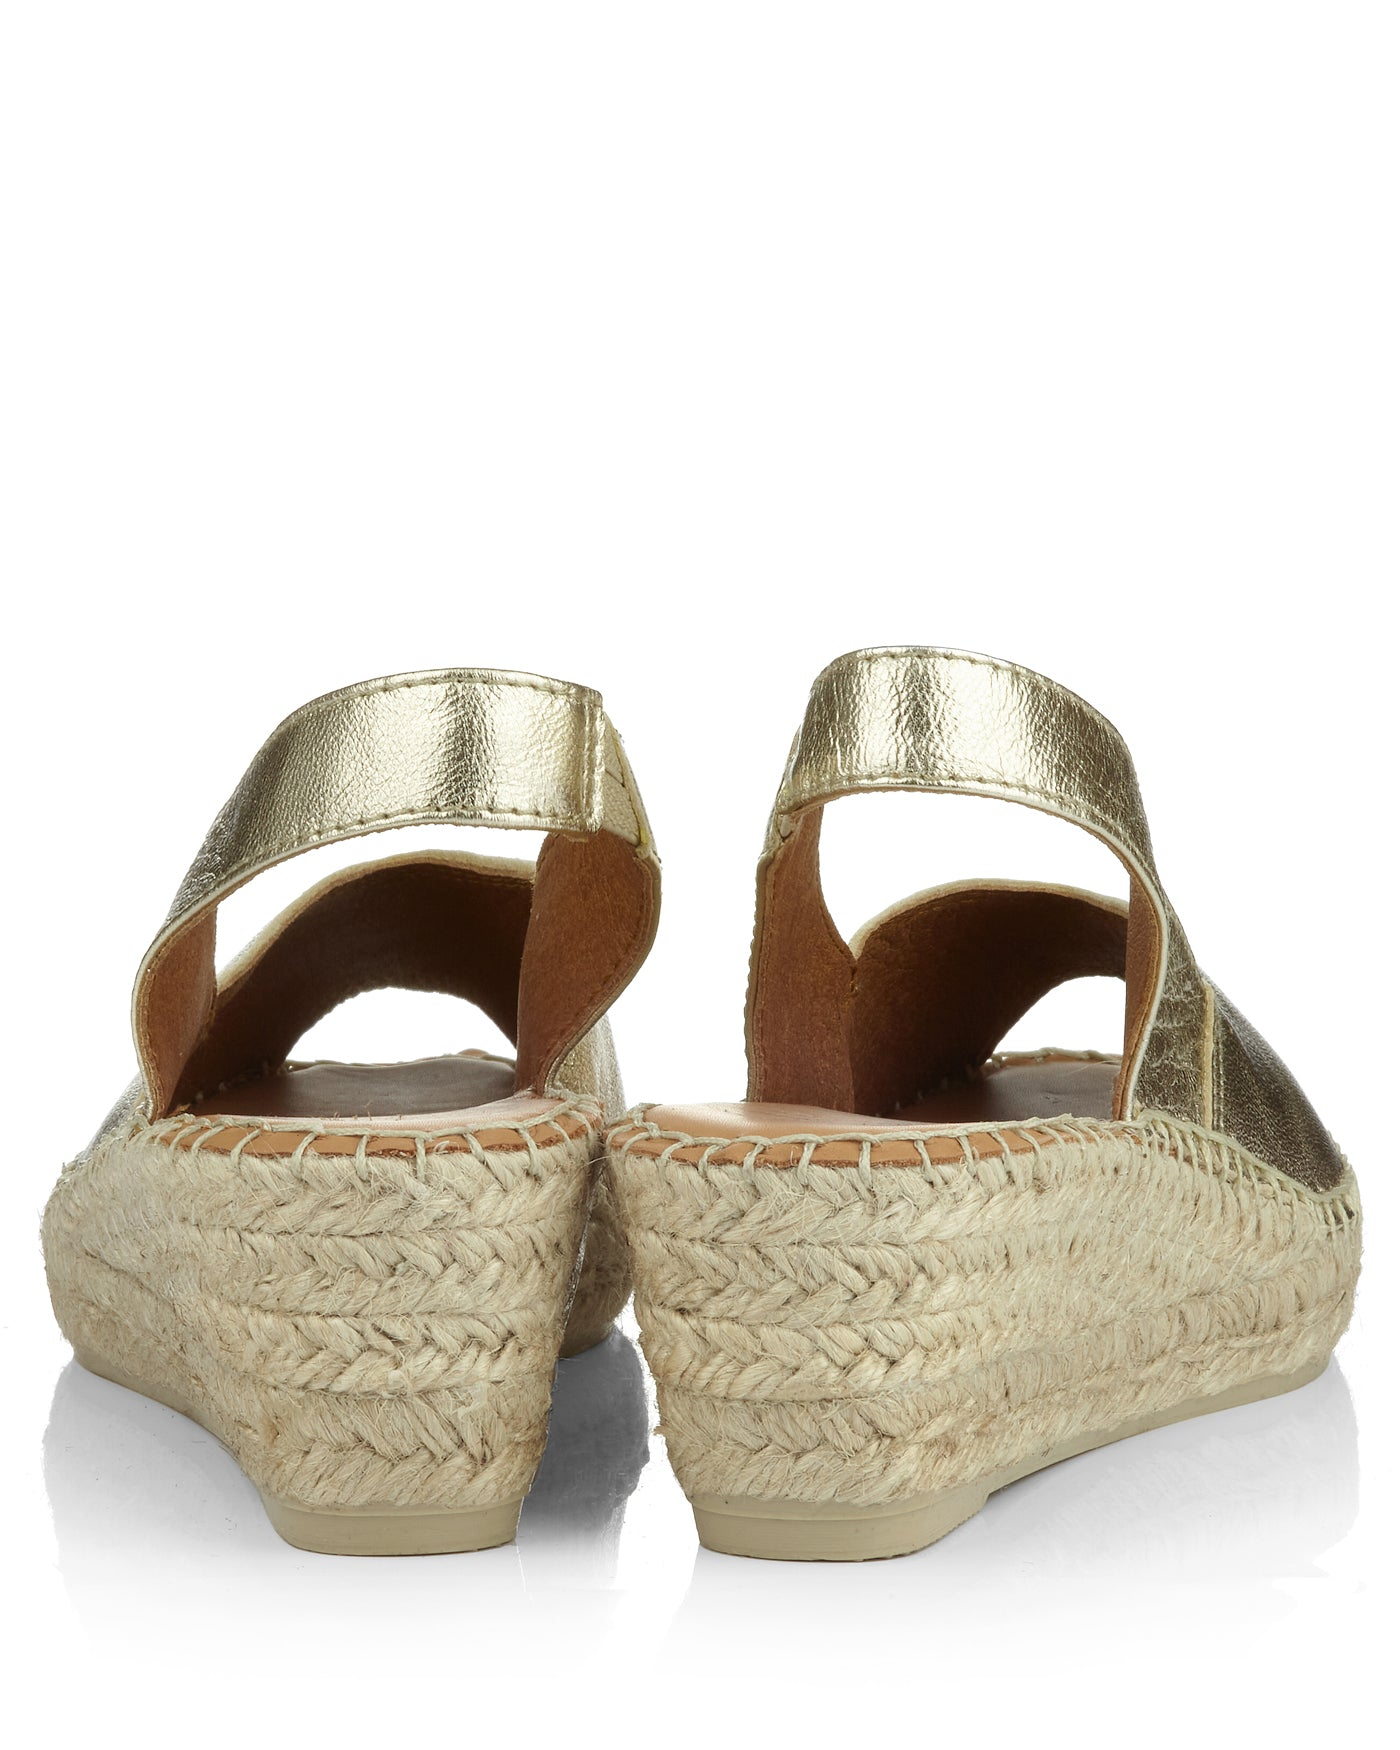 Bernia Platinum Leather Peeptoe Slingback Espadrilles - The Espadrille Hut